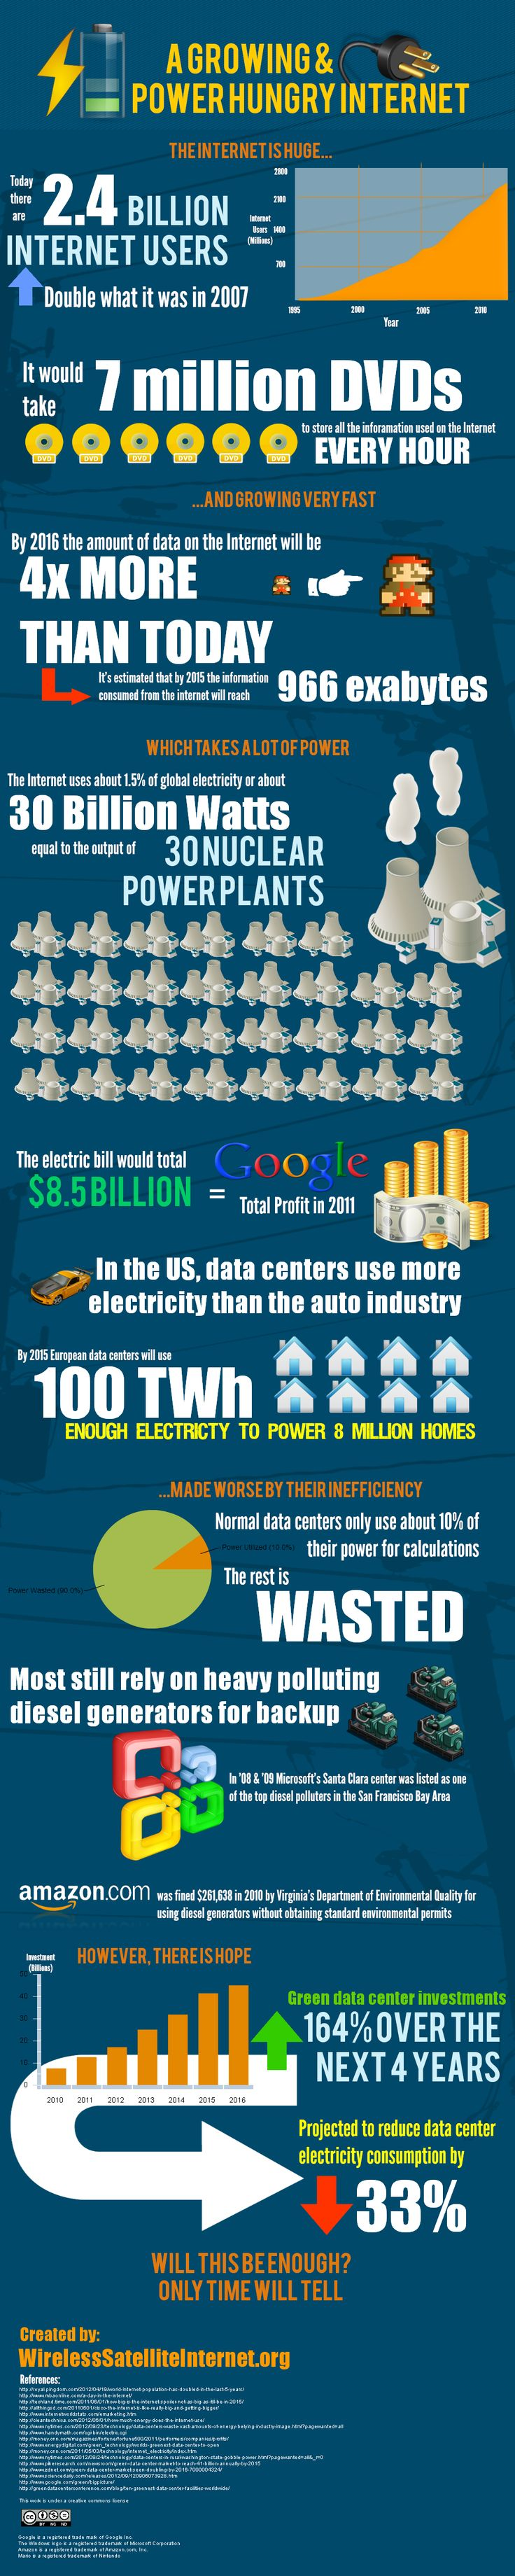 Keeping the internet up and running is no small feet. The energy demands of the internet are staggering. Learn more about the internet's role in energy consumption with this infographic.    Source: http://www.wirelesssatelliteinternet.org/power-hungry-internet